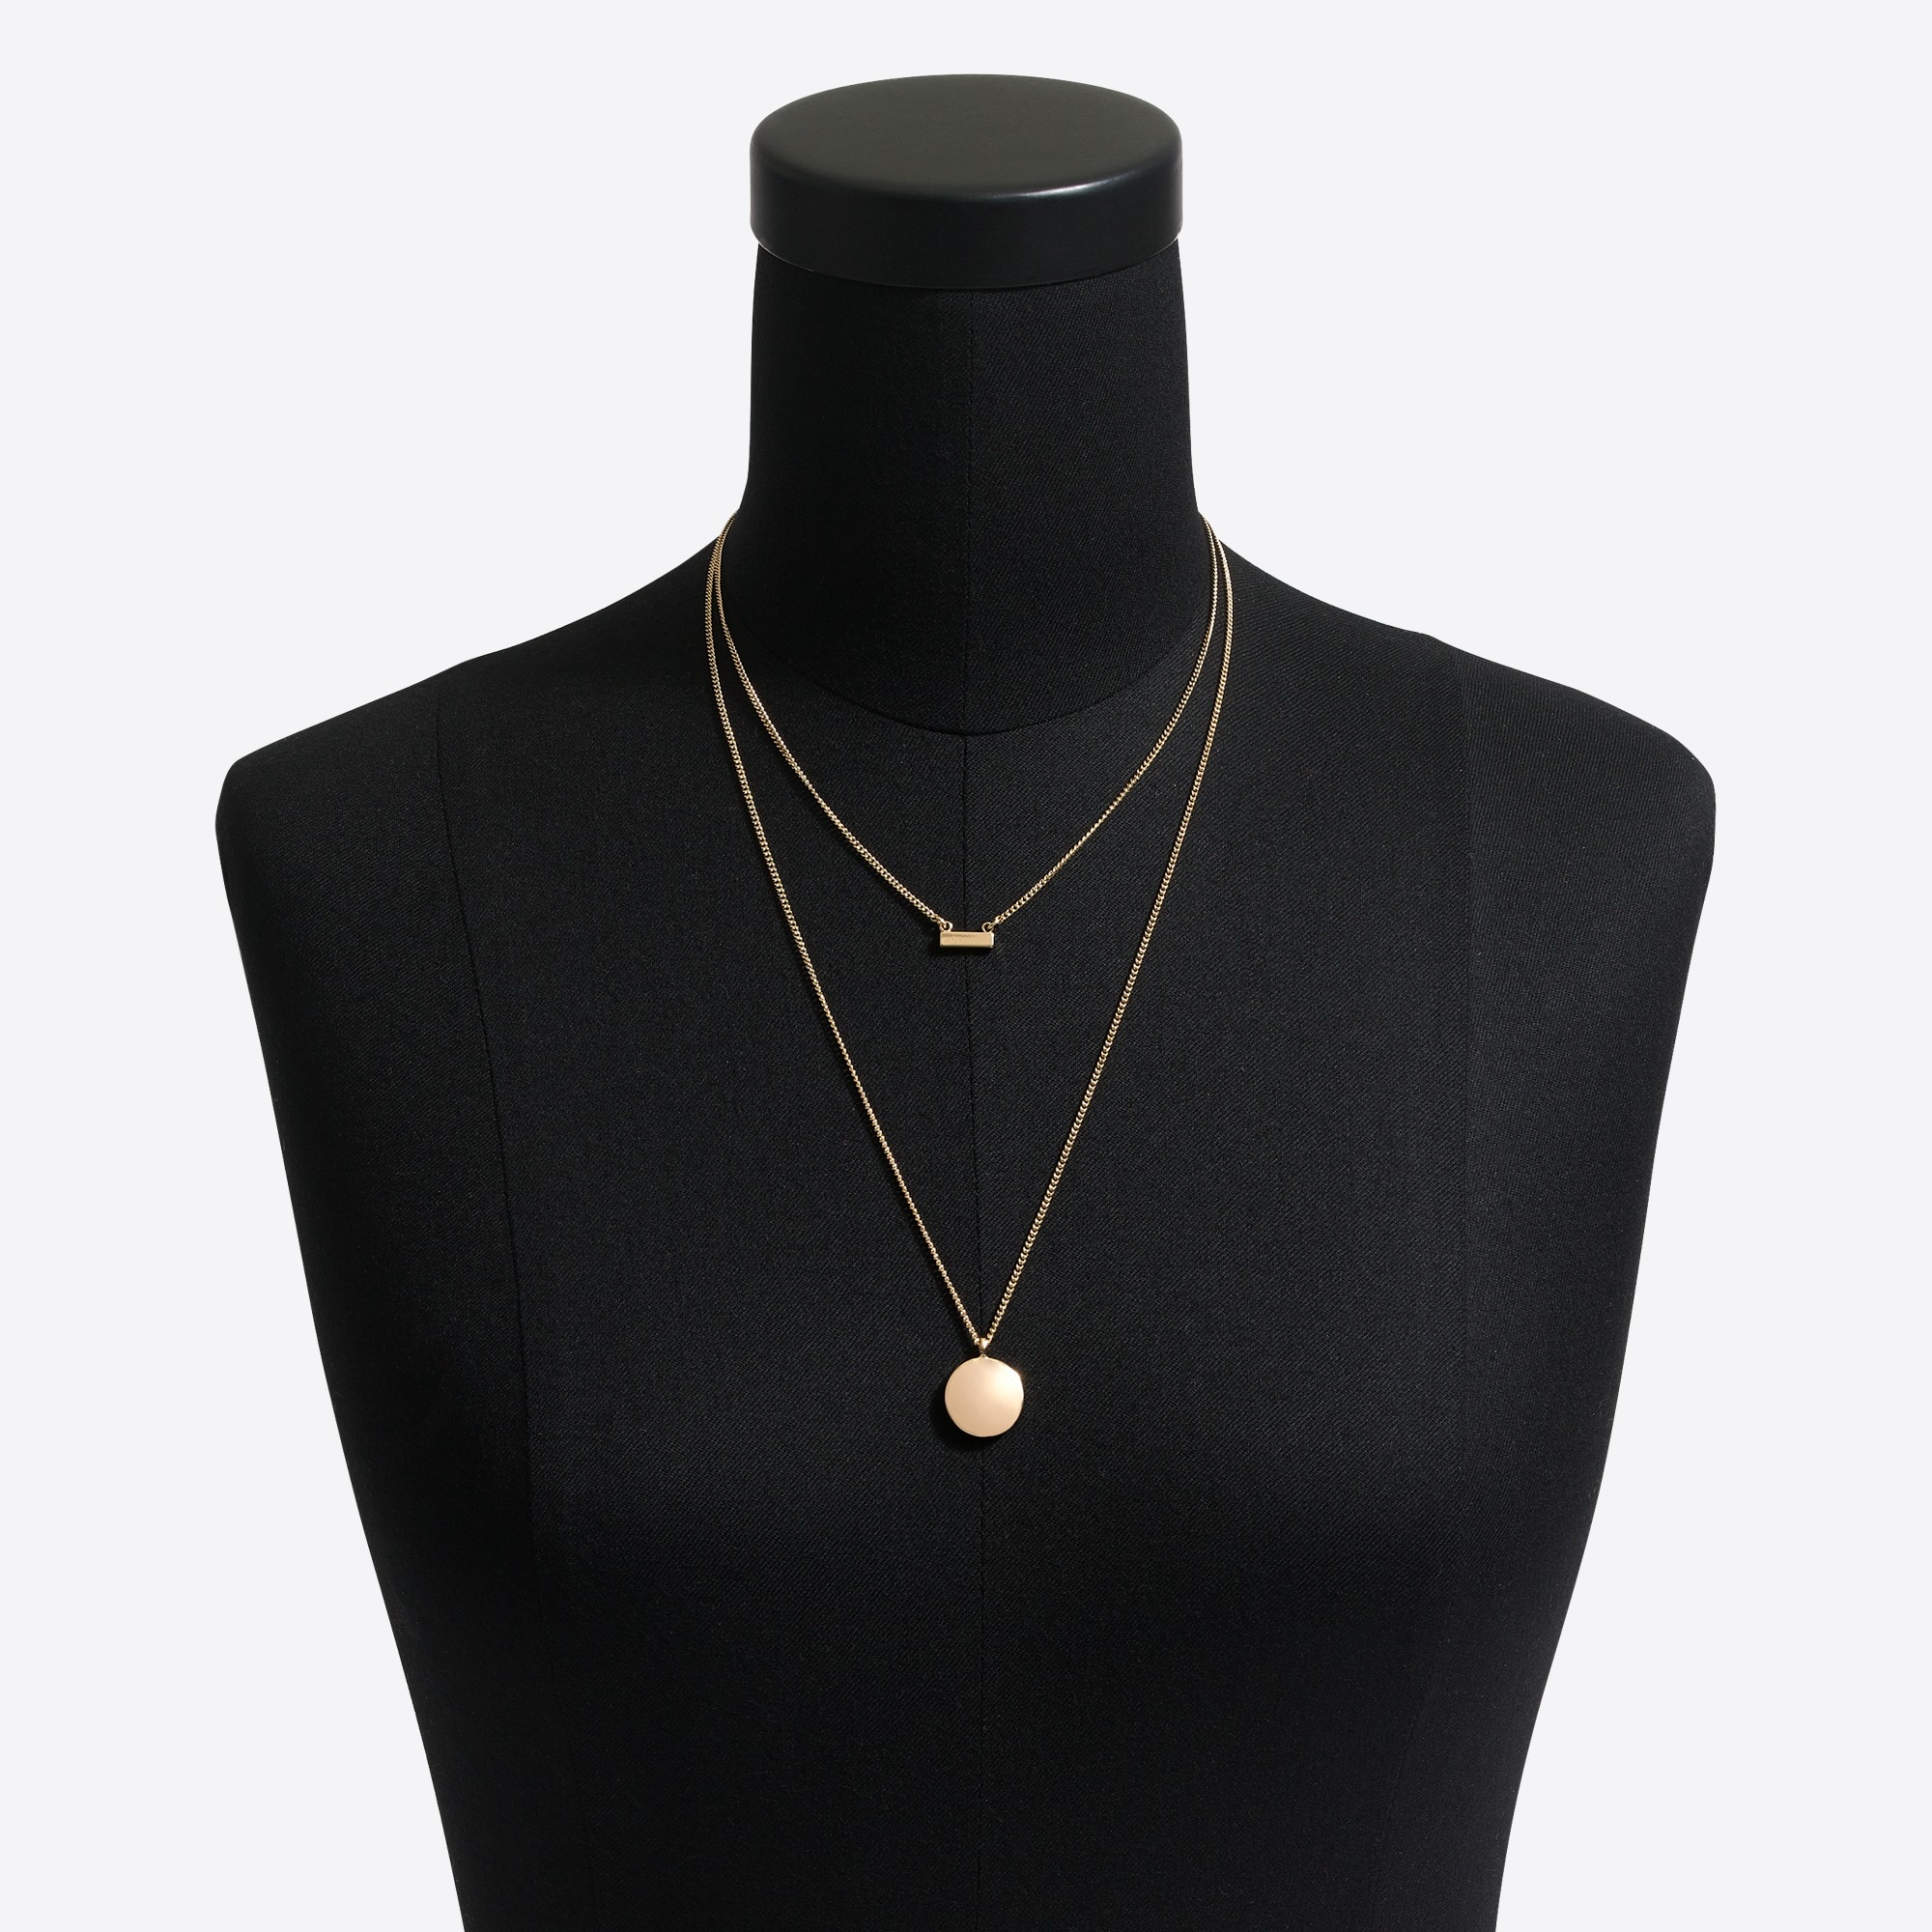 Gold disc and bar layering necklace